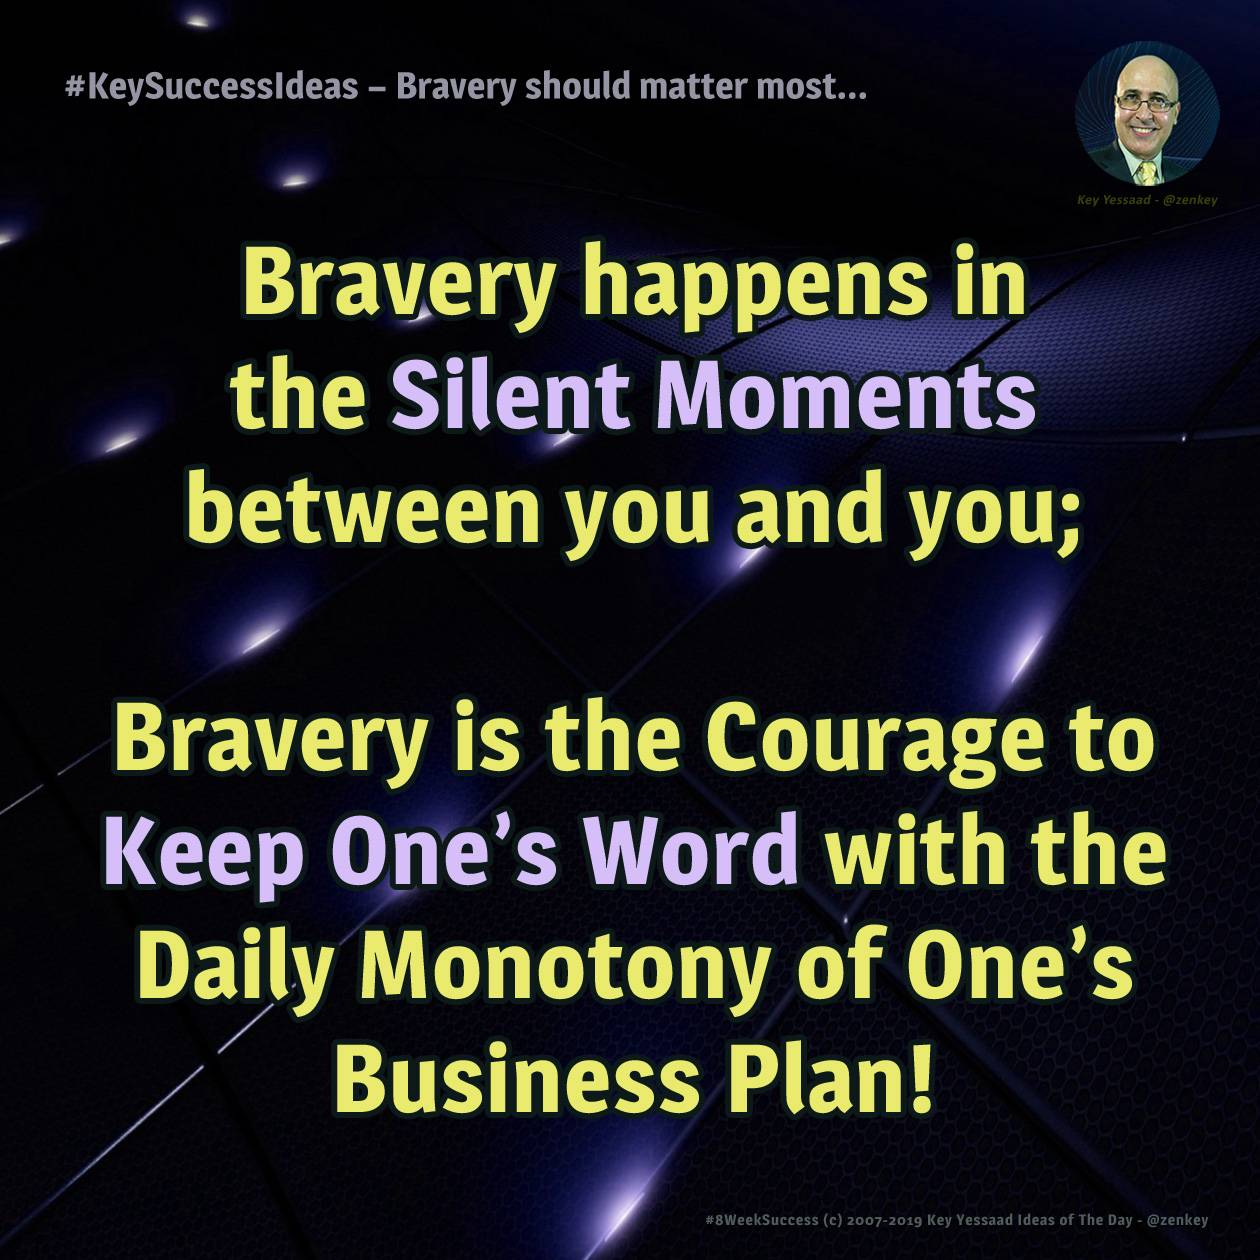 #KeySuccessIdeas - Bravery should matter most...